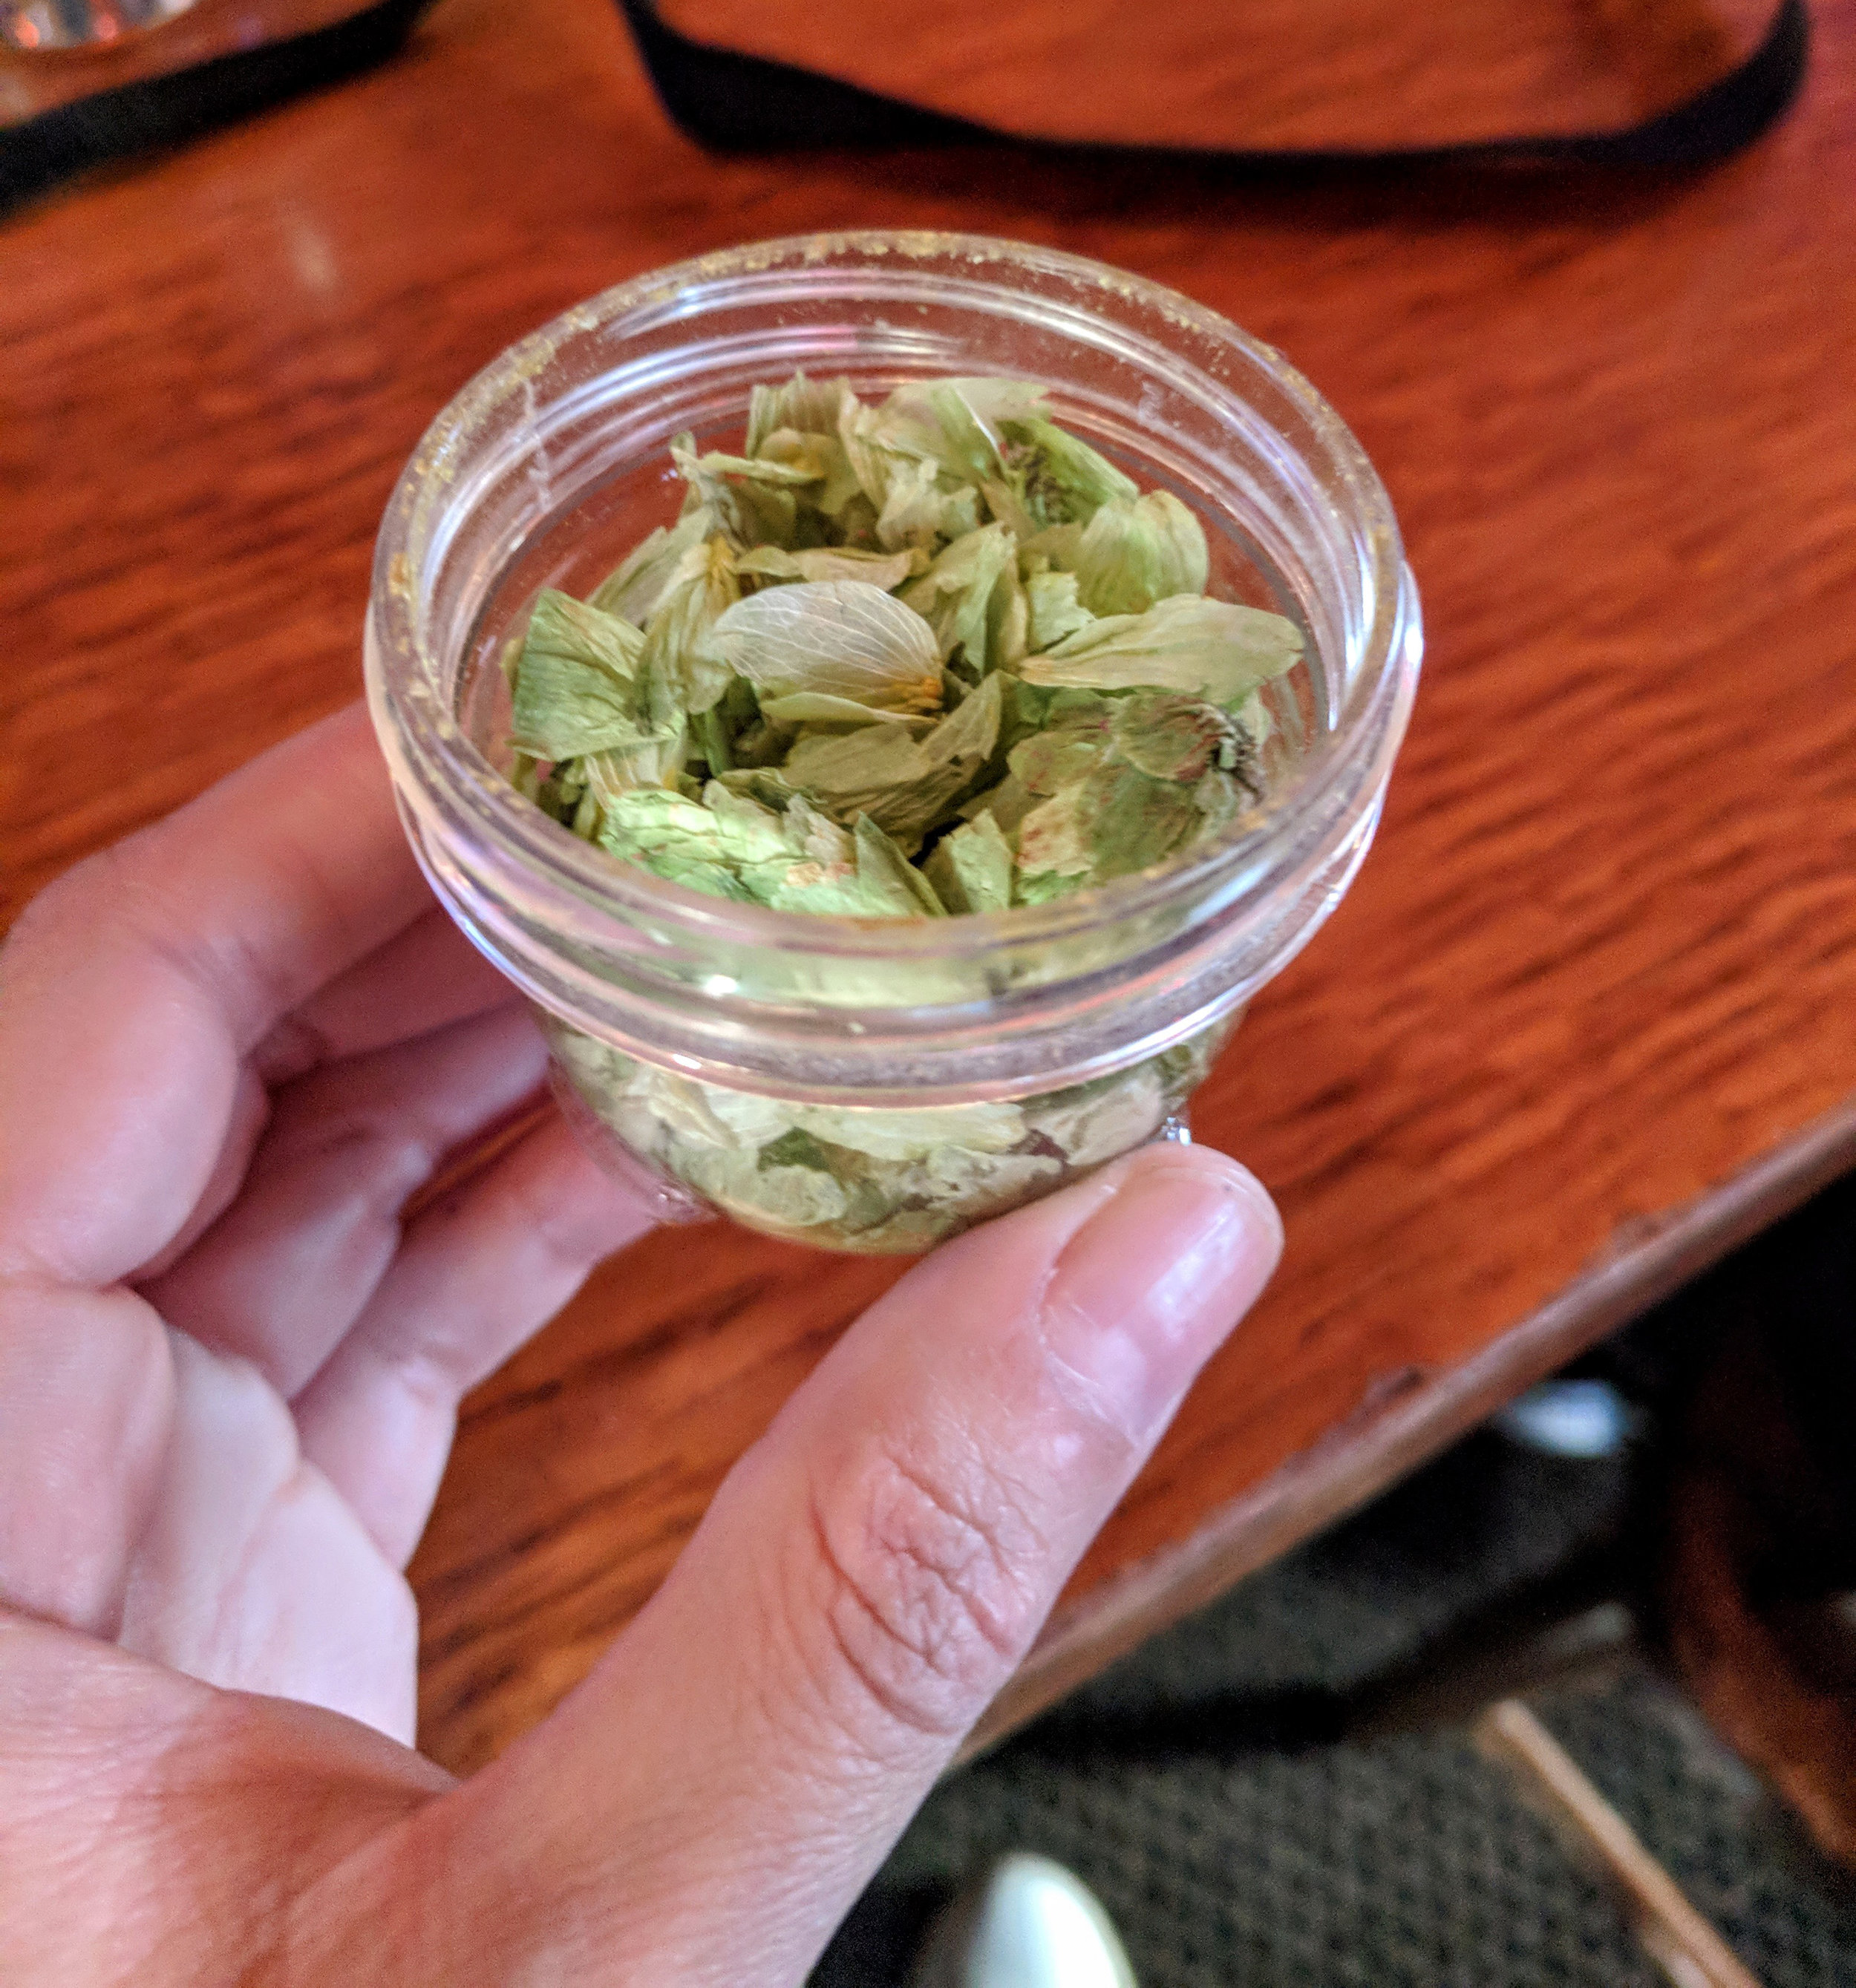 """These are whole hops (which can also be called """"leaf hops"""" or """"raw hops""""). They are the whole dried cone flowers of the female hop plant."""